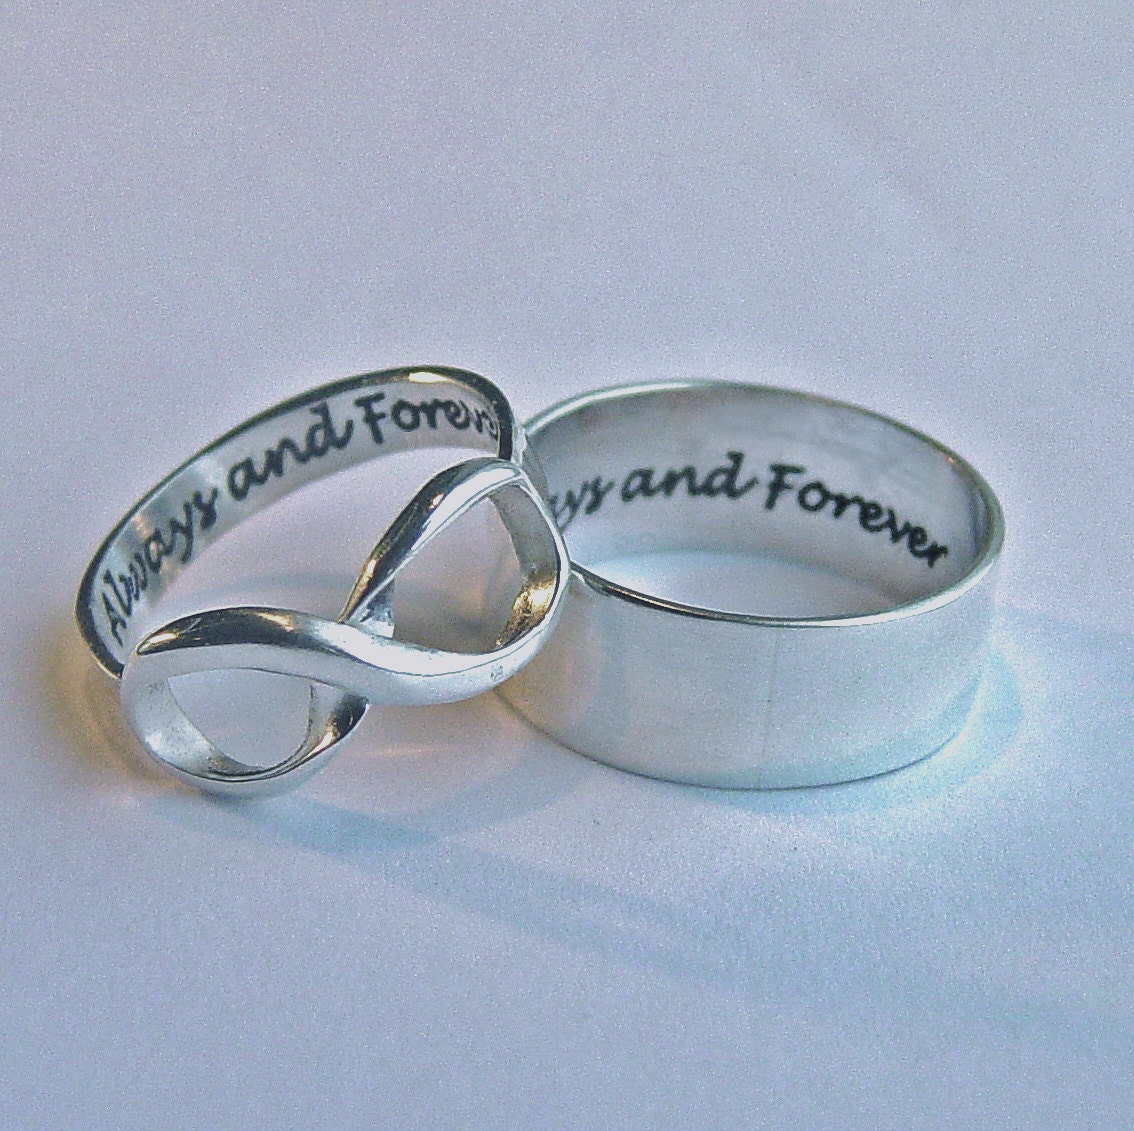 rings customized ring engagement wedding printed